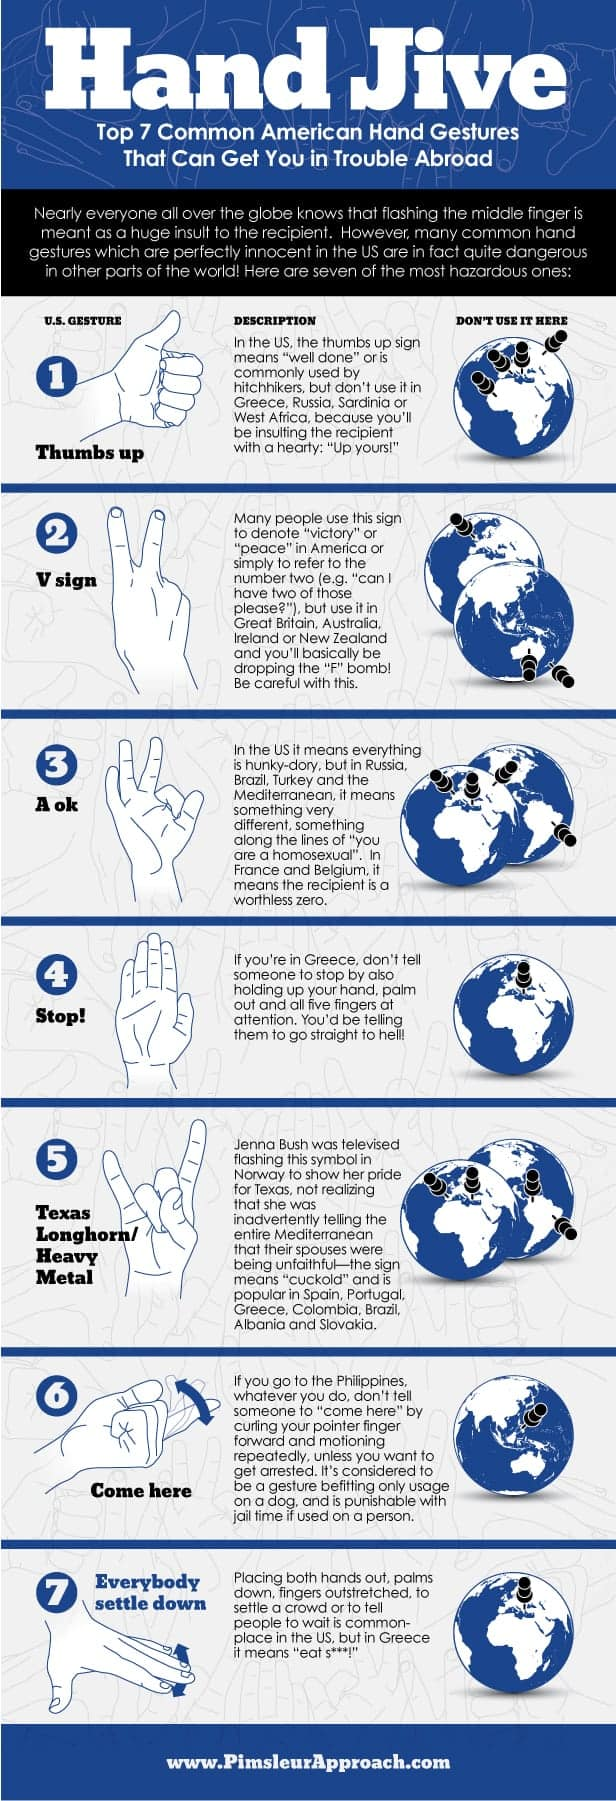 Hand Jive Daily Infographic